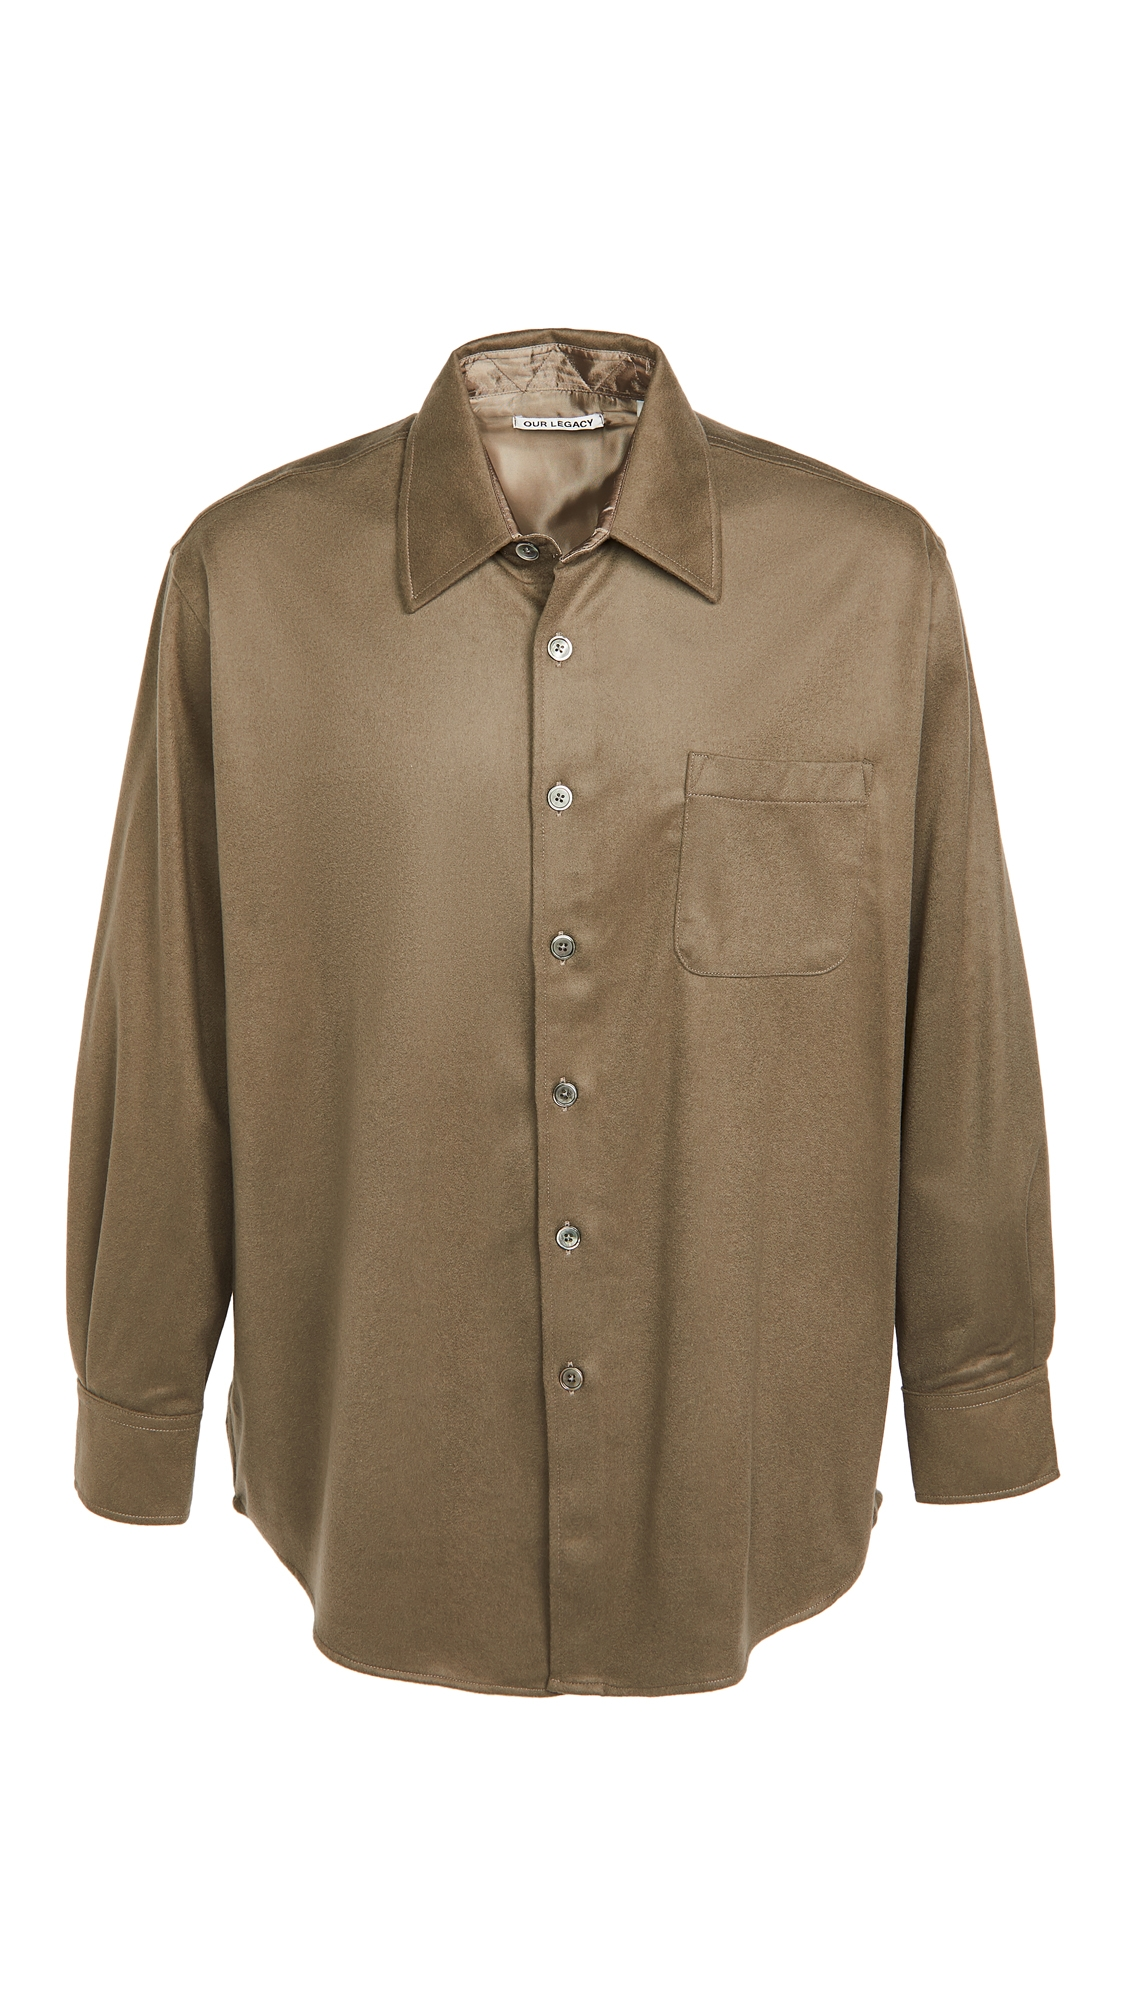 Our Legacy Melton Wool Above Shirt